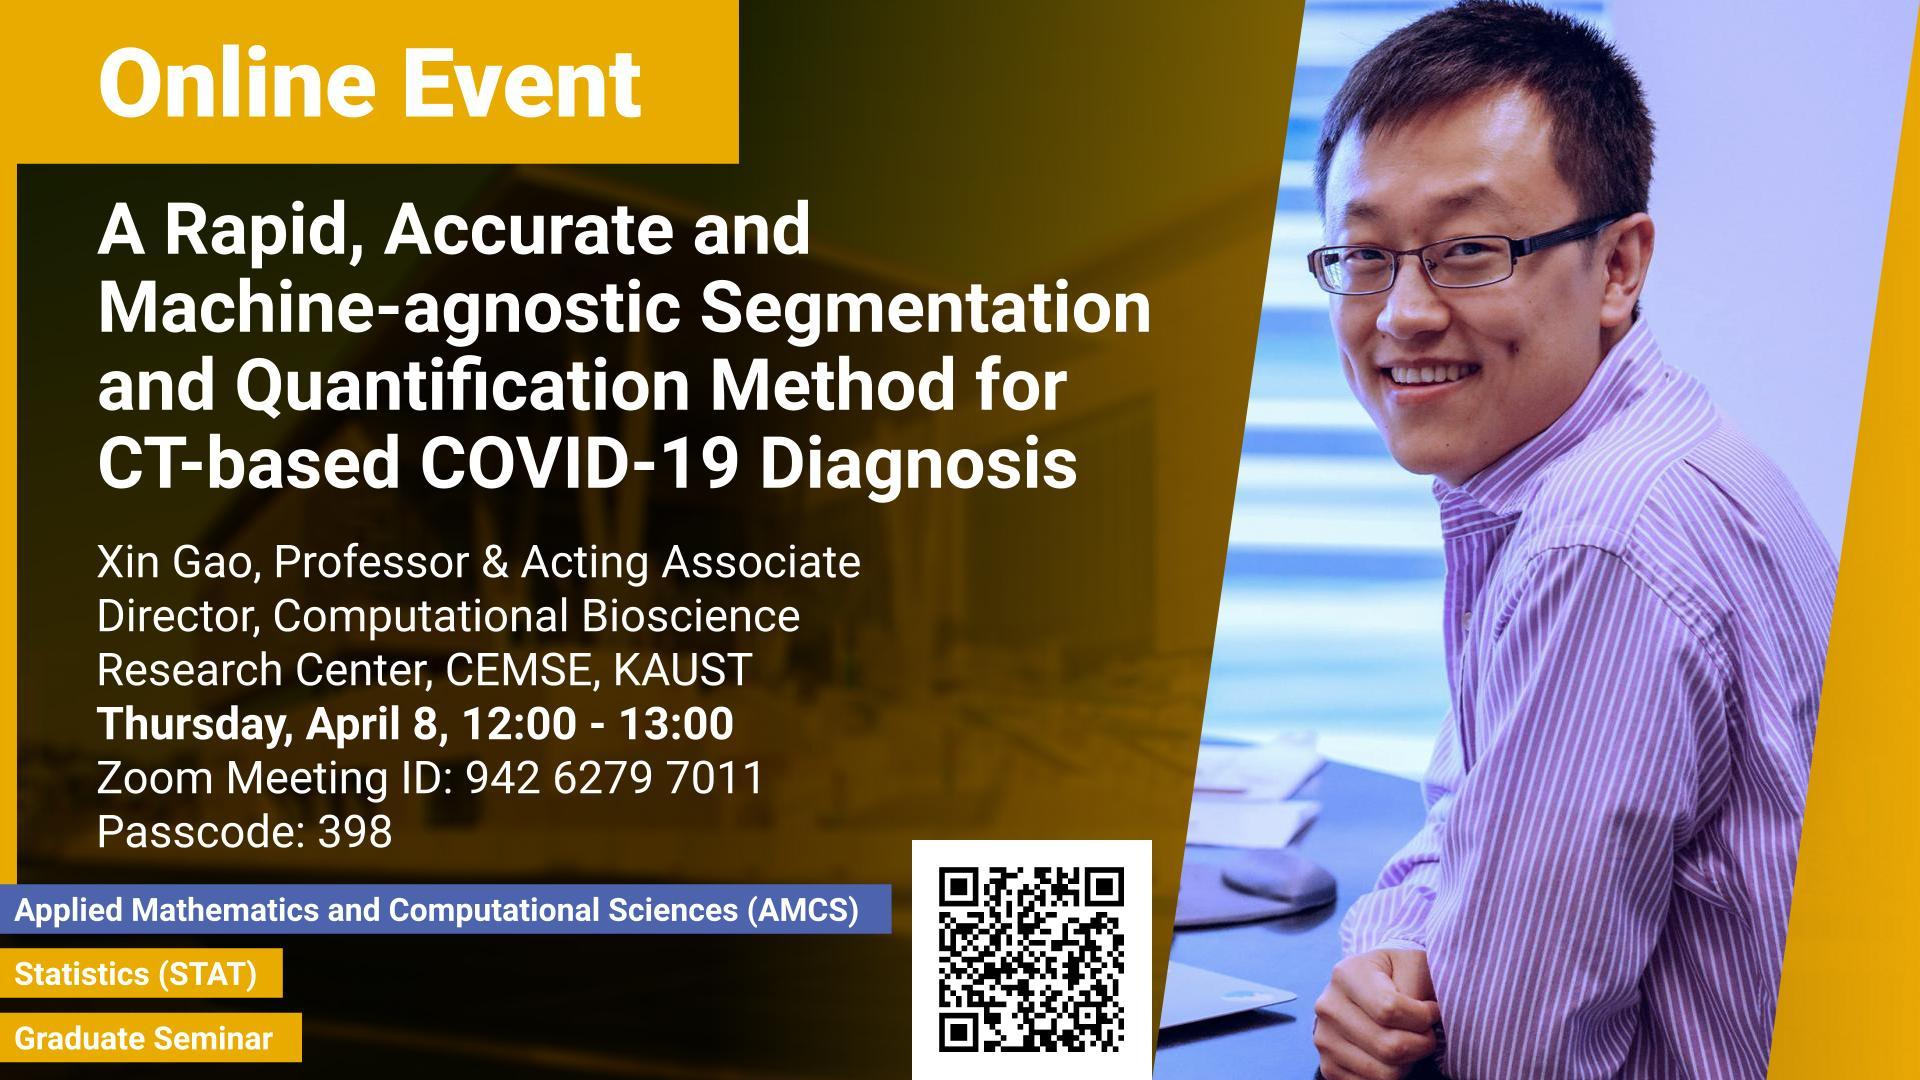 KAUST CEMSE AMCS STAT Graduate Seminar A Rapid, Accurate and Machine-agnostic Segmentation and Quantification  Method for CT-based COVID-19 Diagnosis